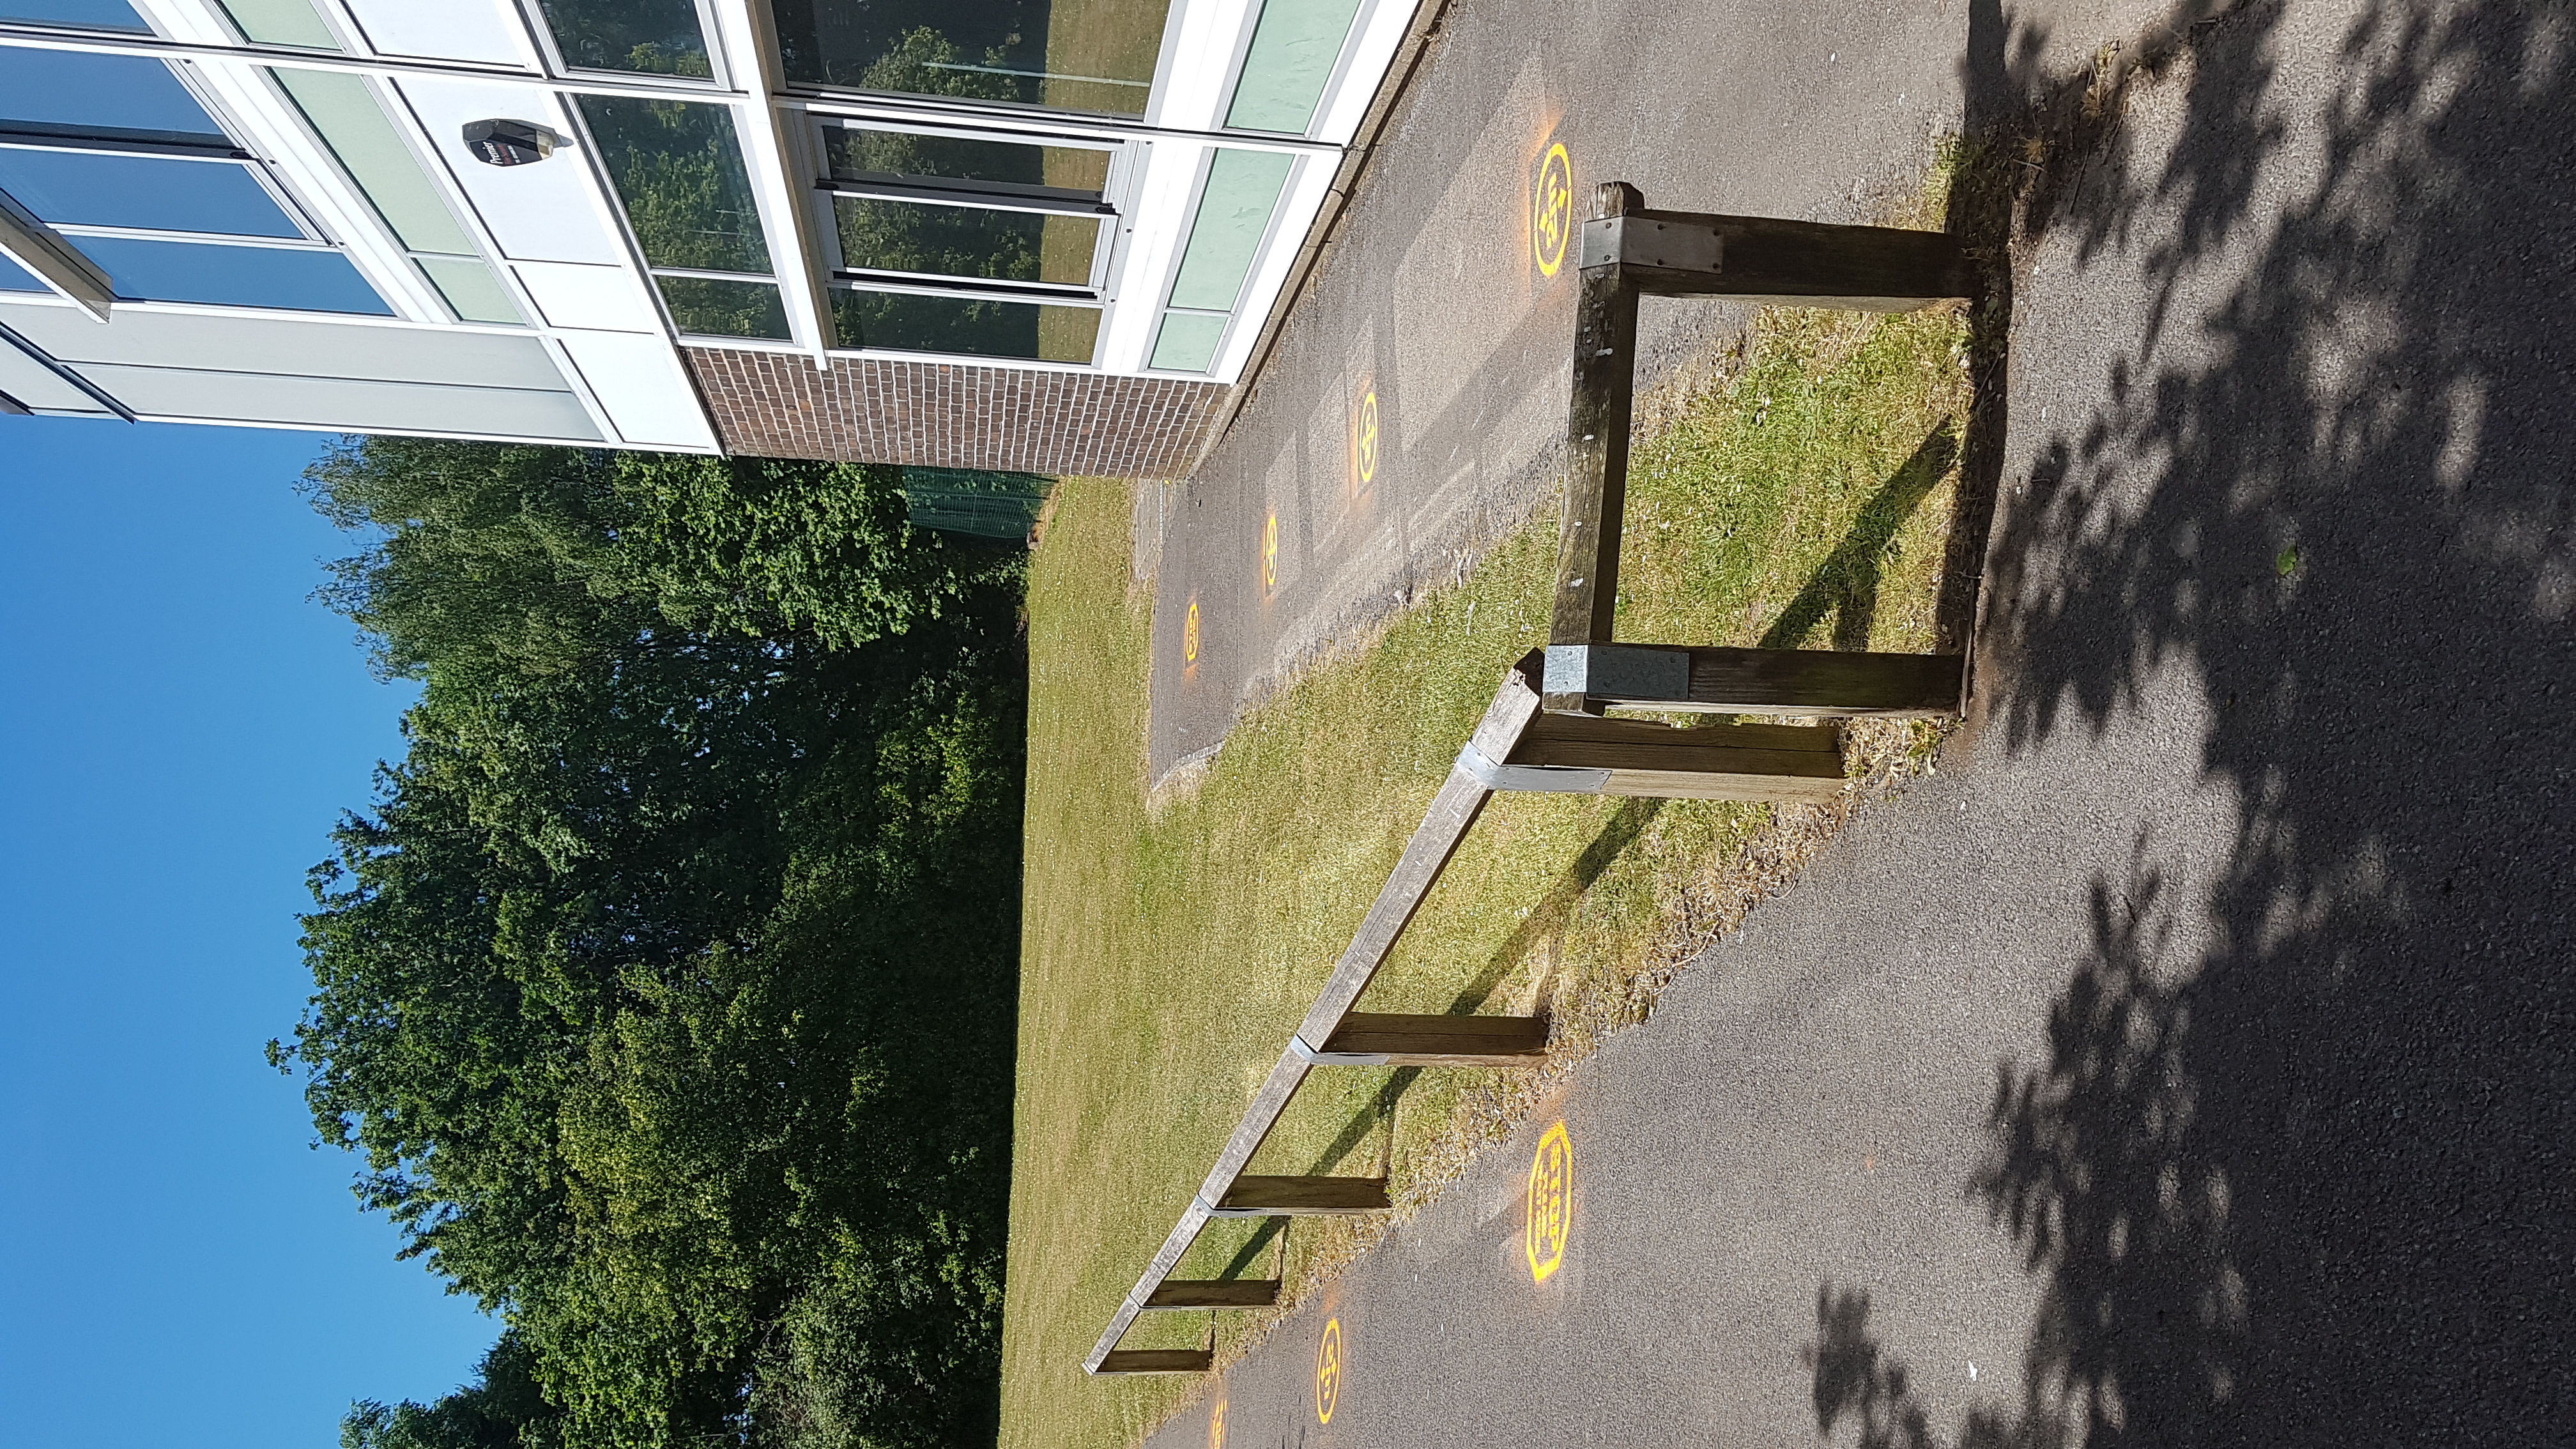 The Approach to Year 5's Entrance